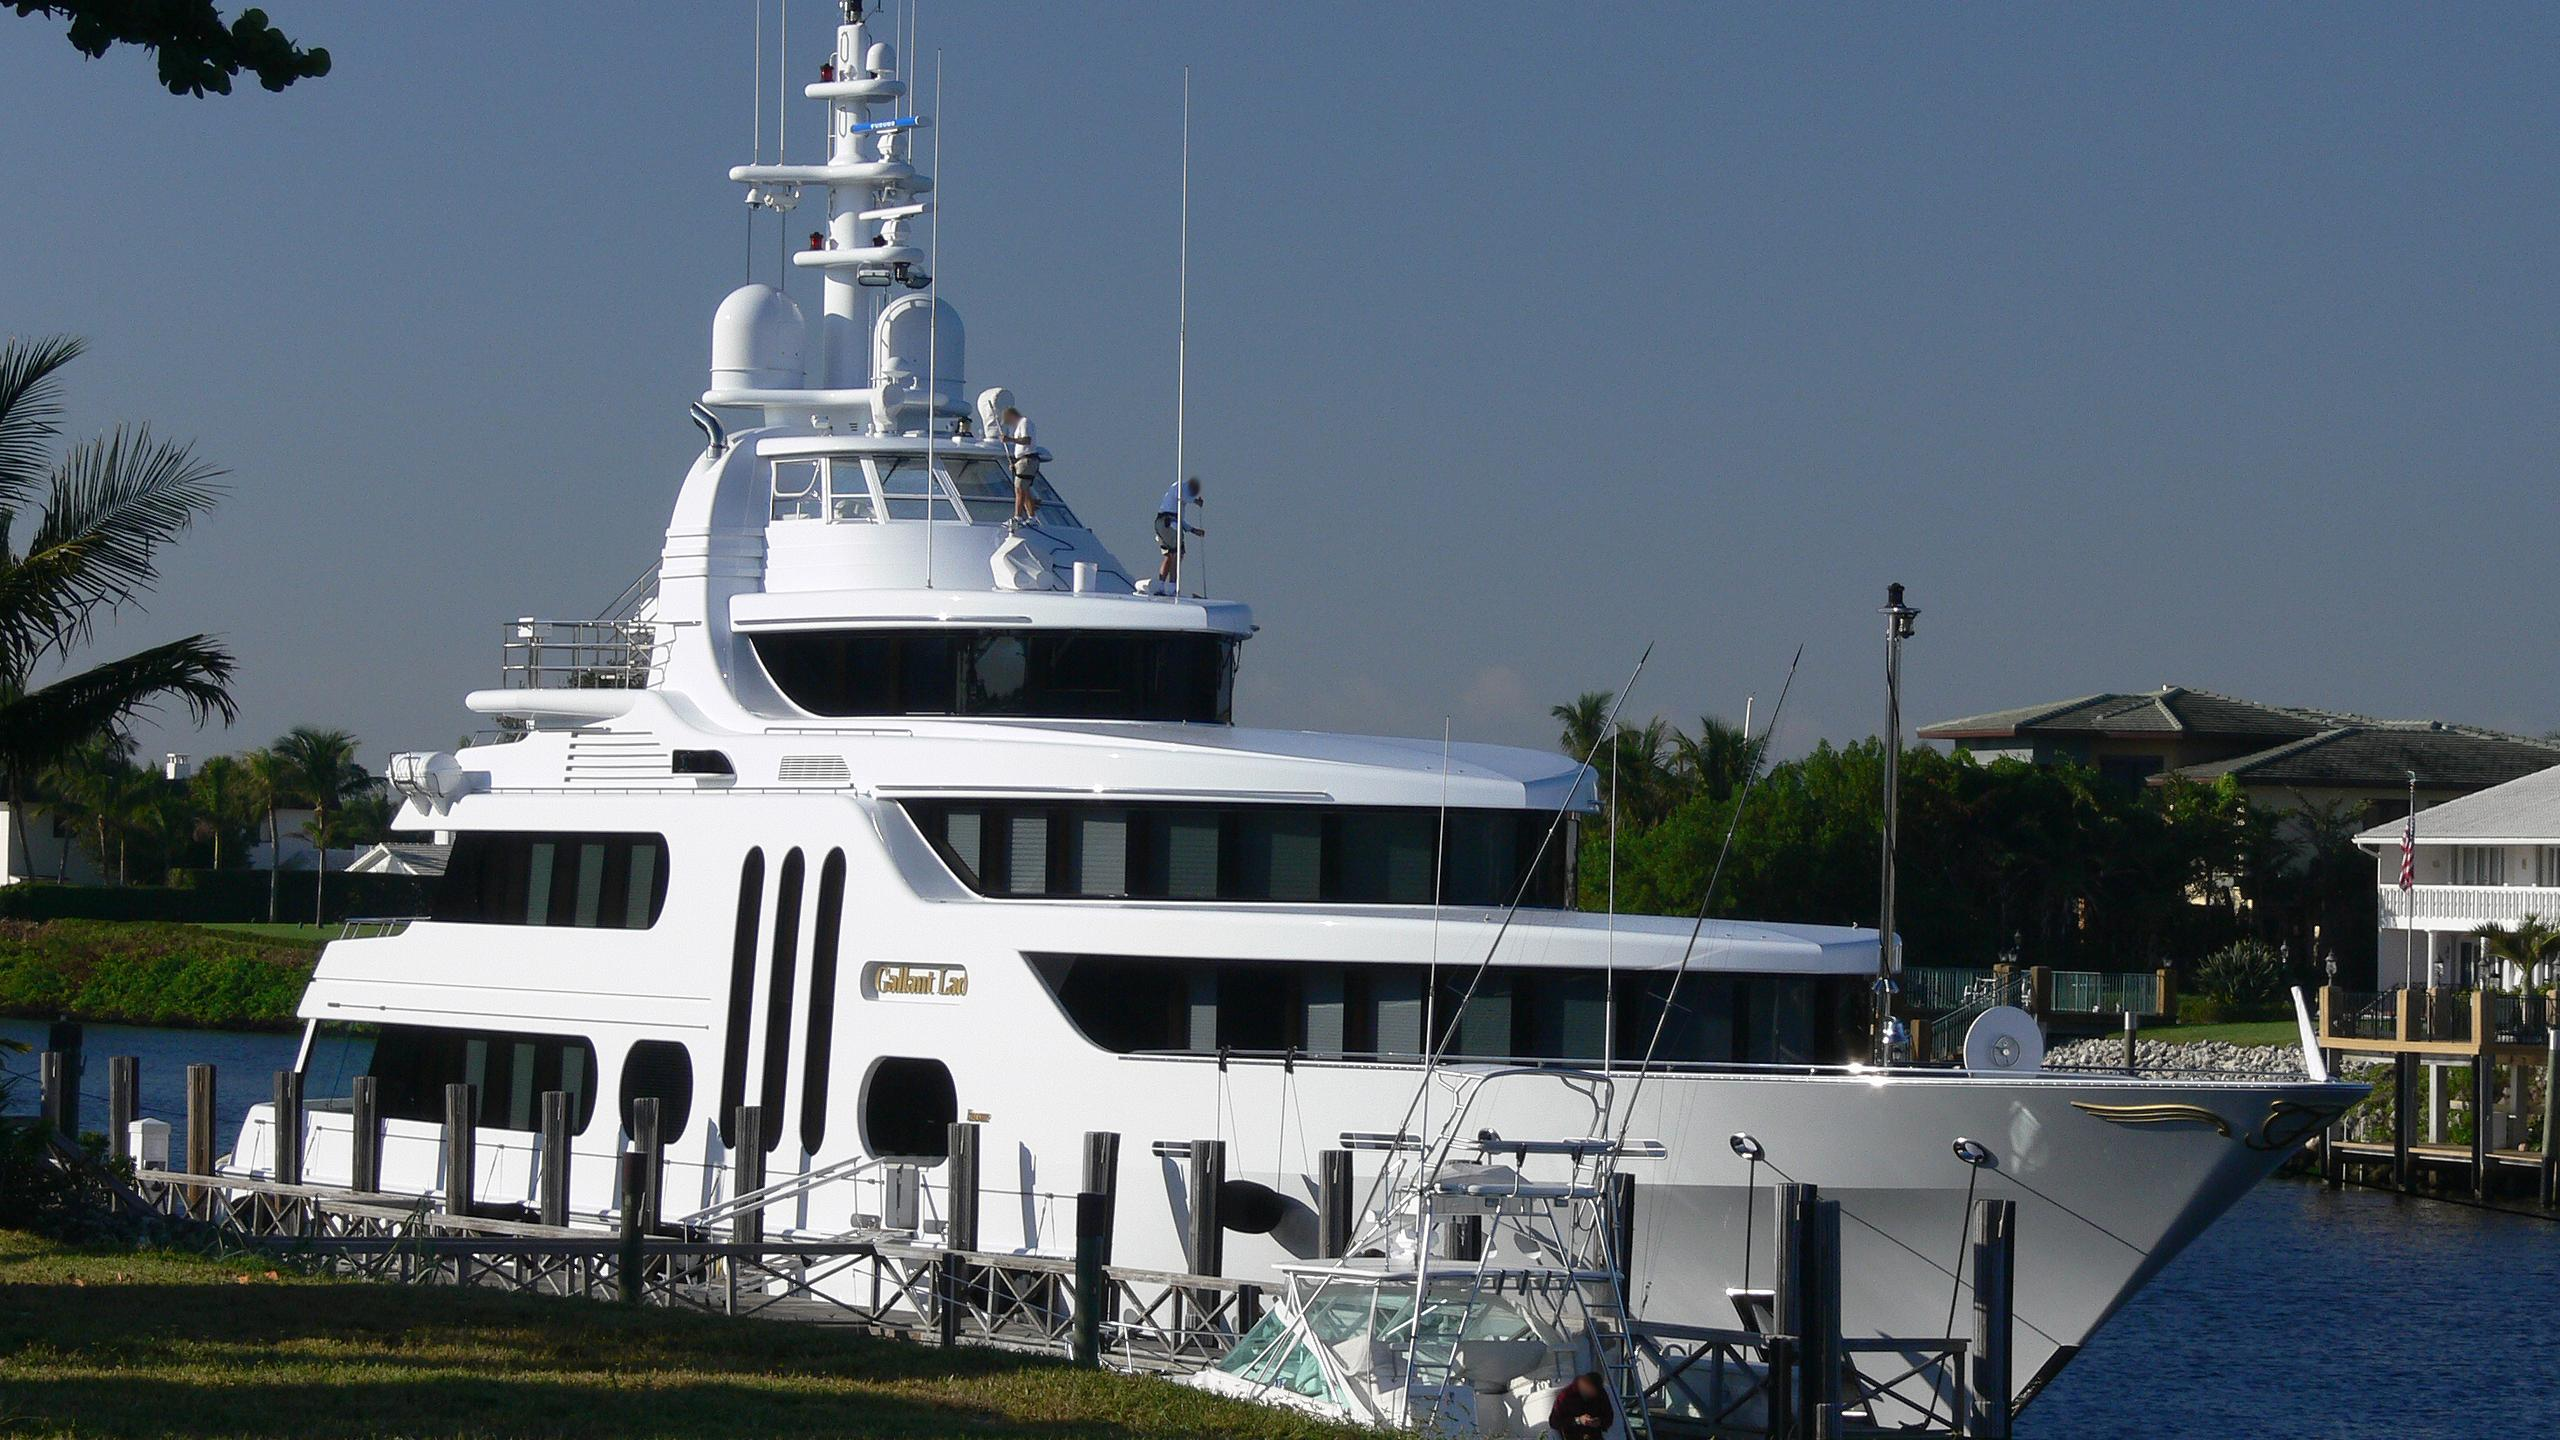 gallant-lady-yacht-exterior